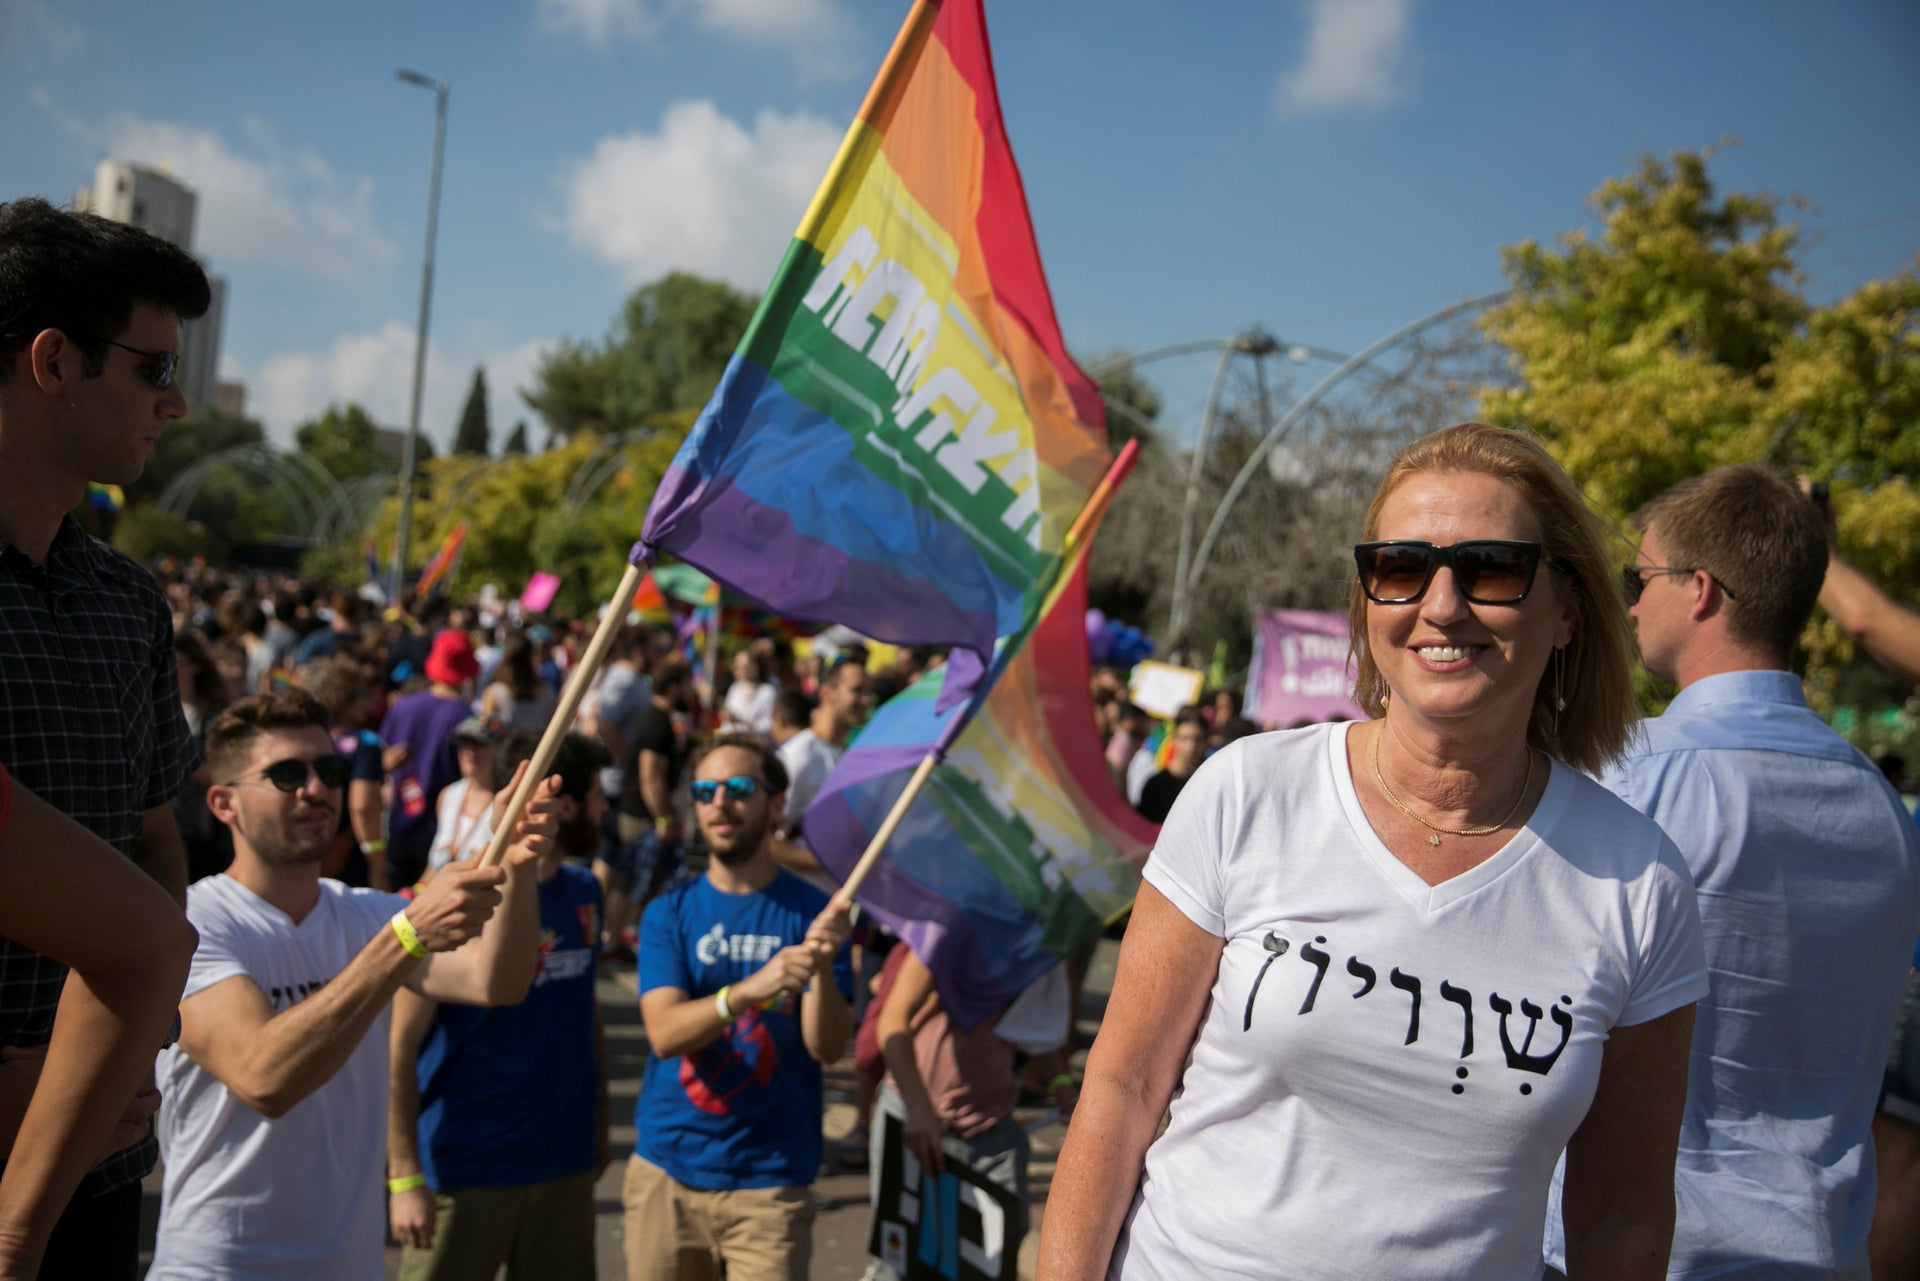 Tzipi Livni take part in the annual Jerusalem Gay Pride parade on August 2, 2018.